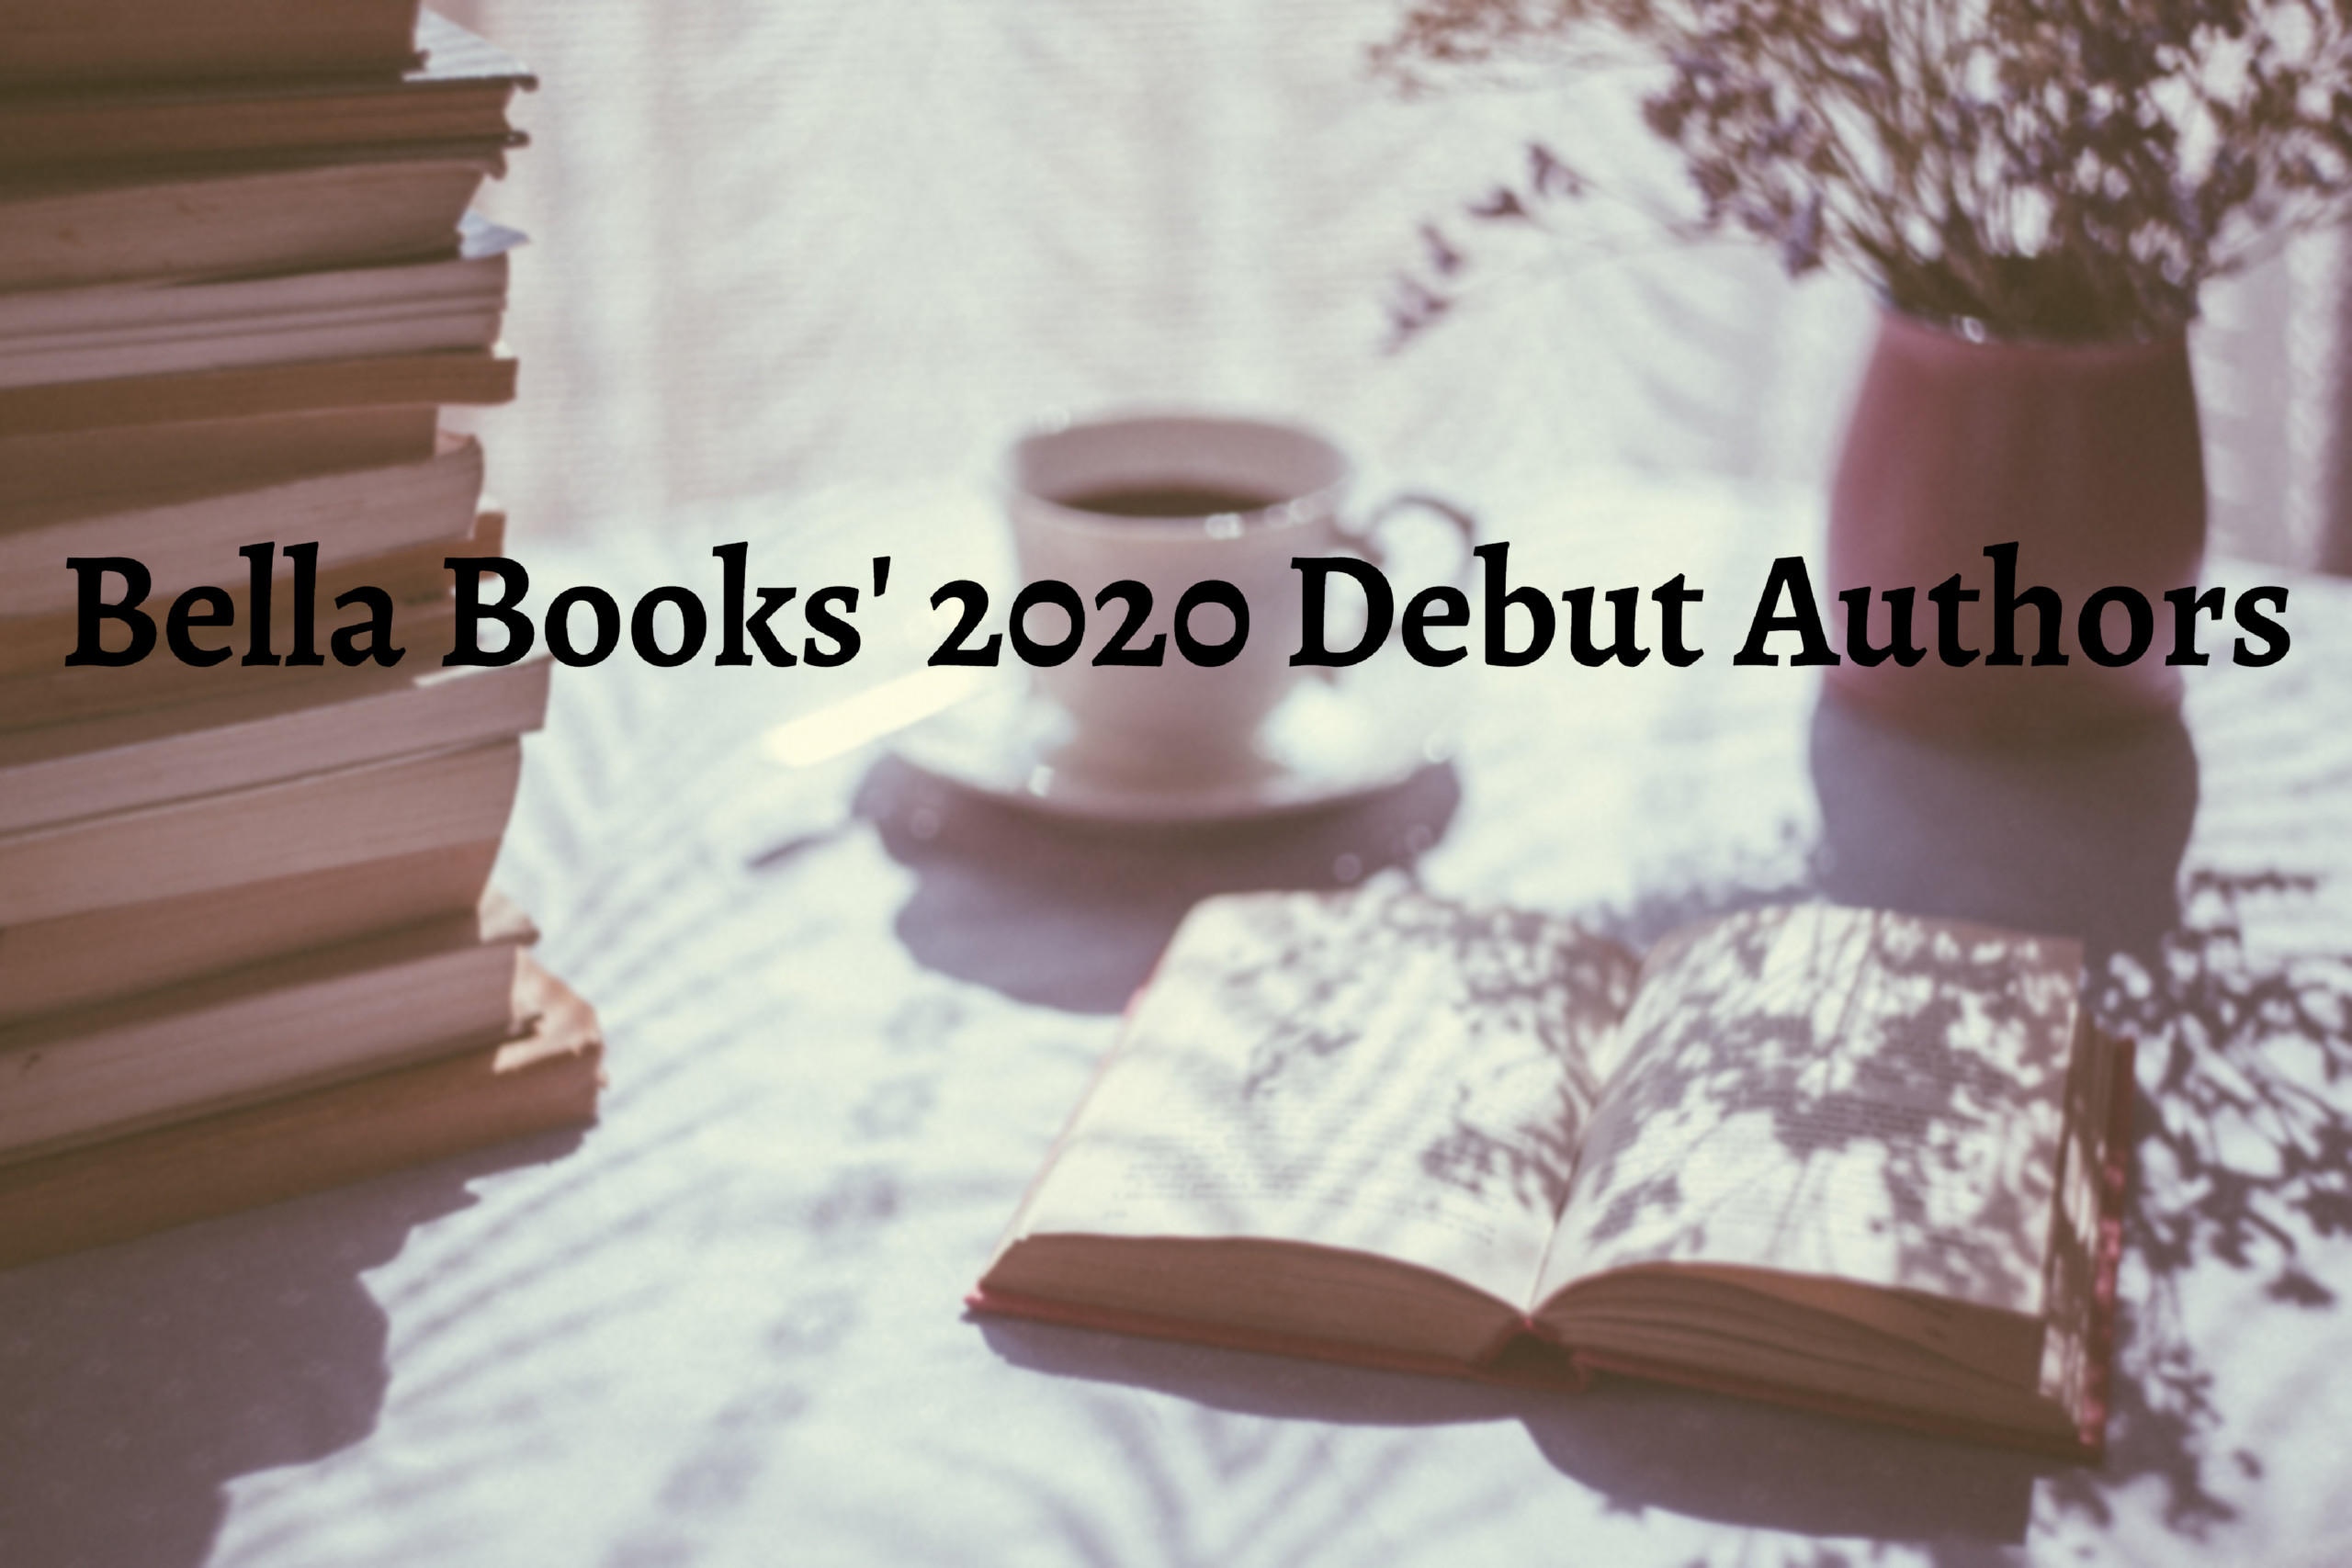 Bella Books 2020 debut